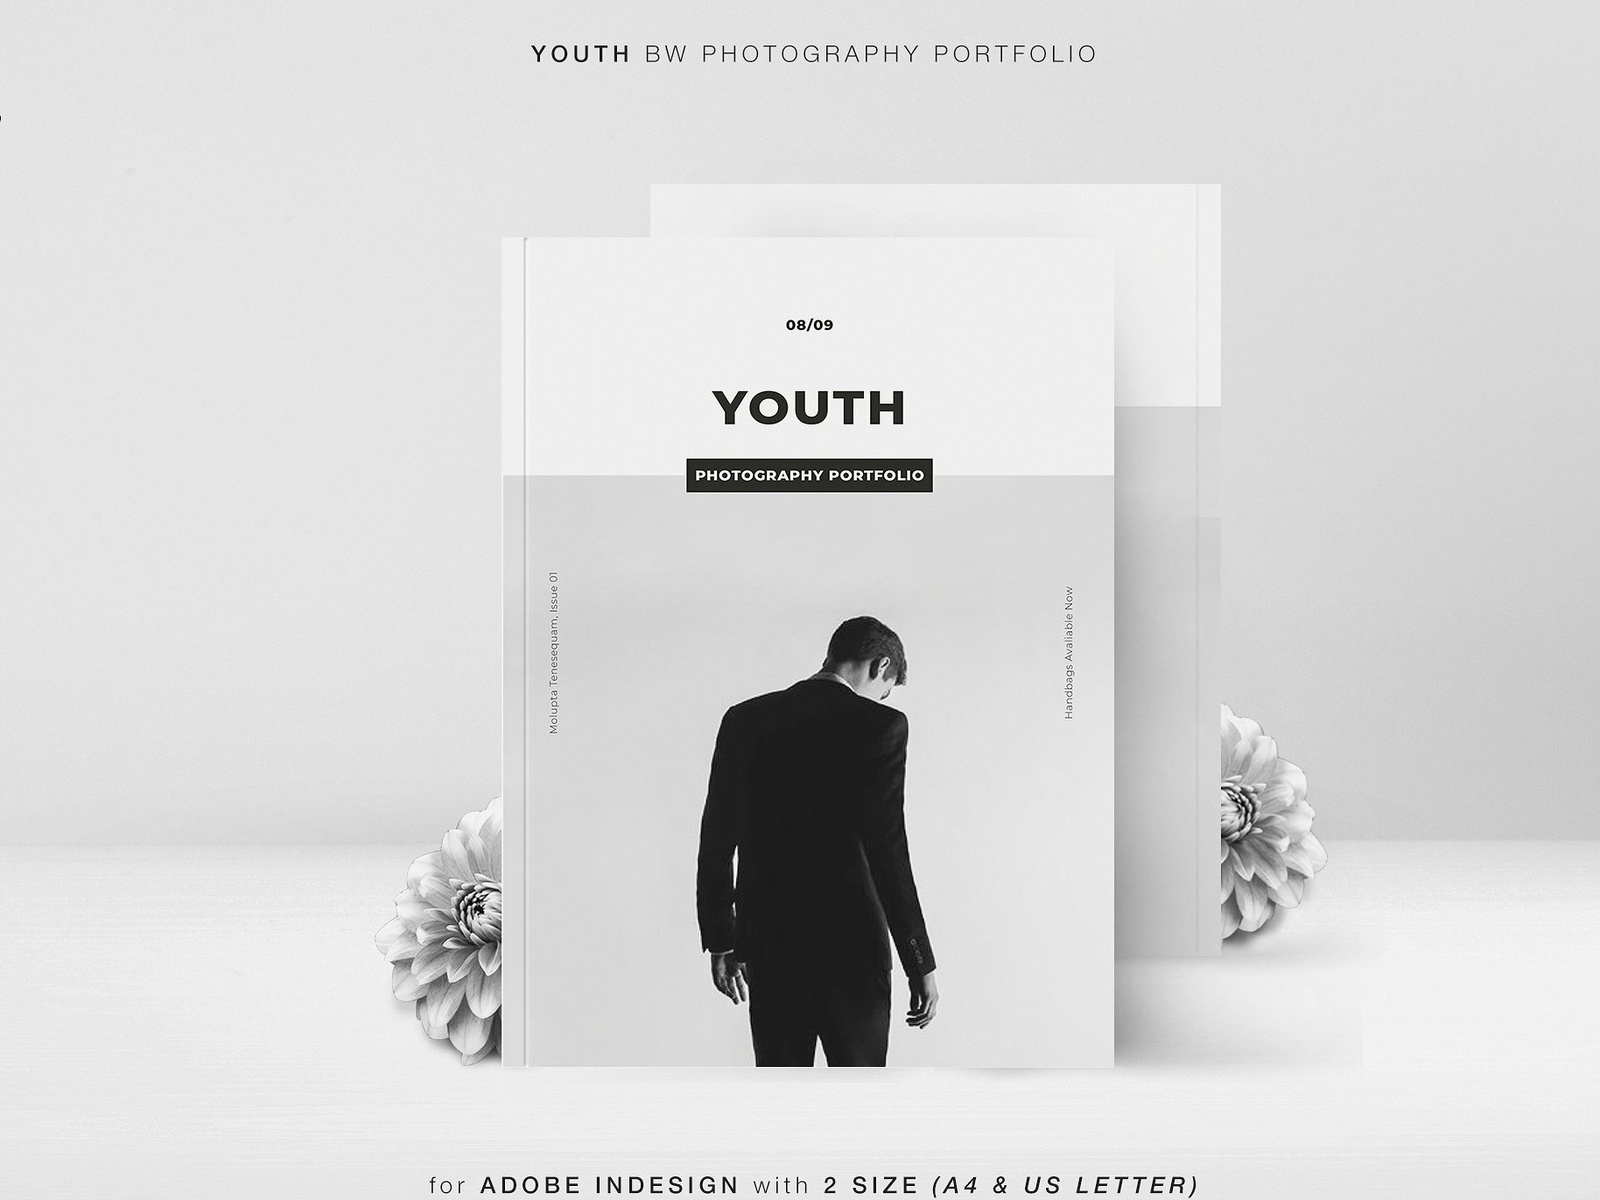 Youth Bw Photography Portfolio By Brochure Design On Dribbble